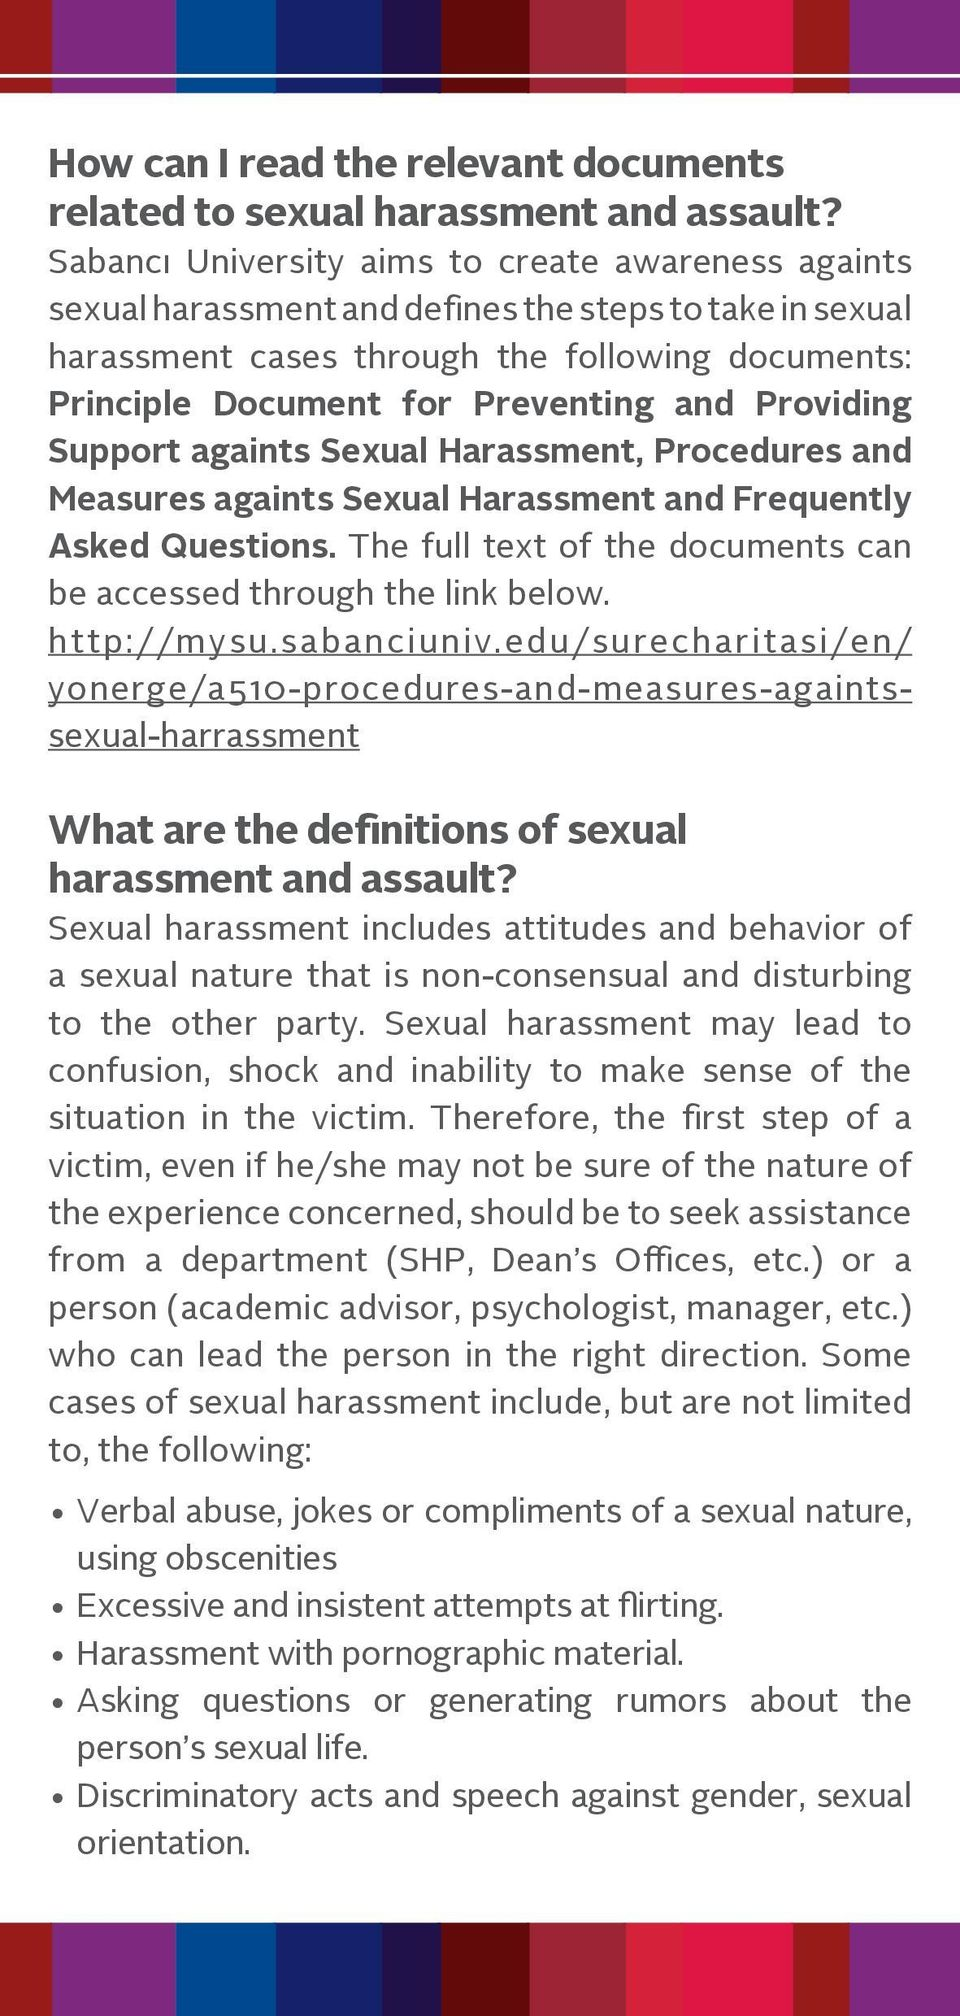 Providing Support againts Sexual Harassment, Procedures and Measures againts Sexual Harassment and Frequently Asked Questions. The full text of the documents can be accessed through the link below.